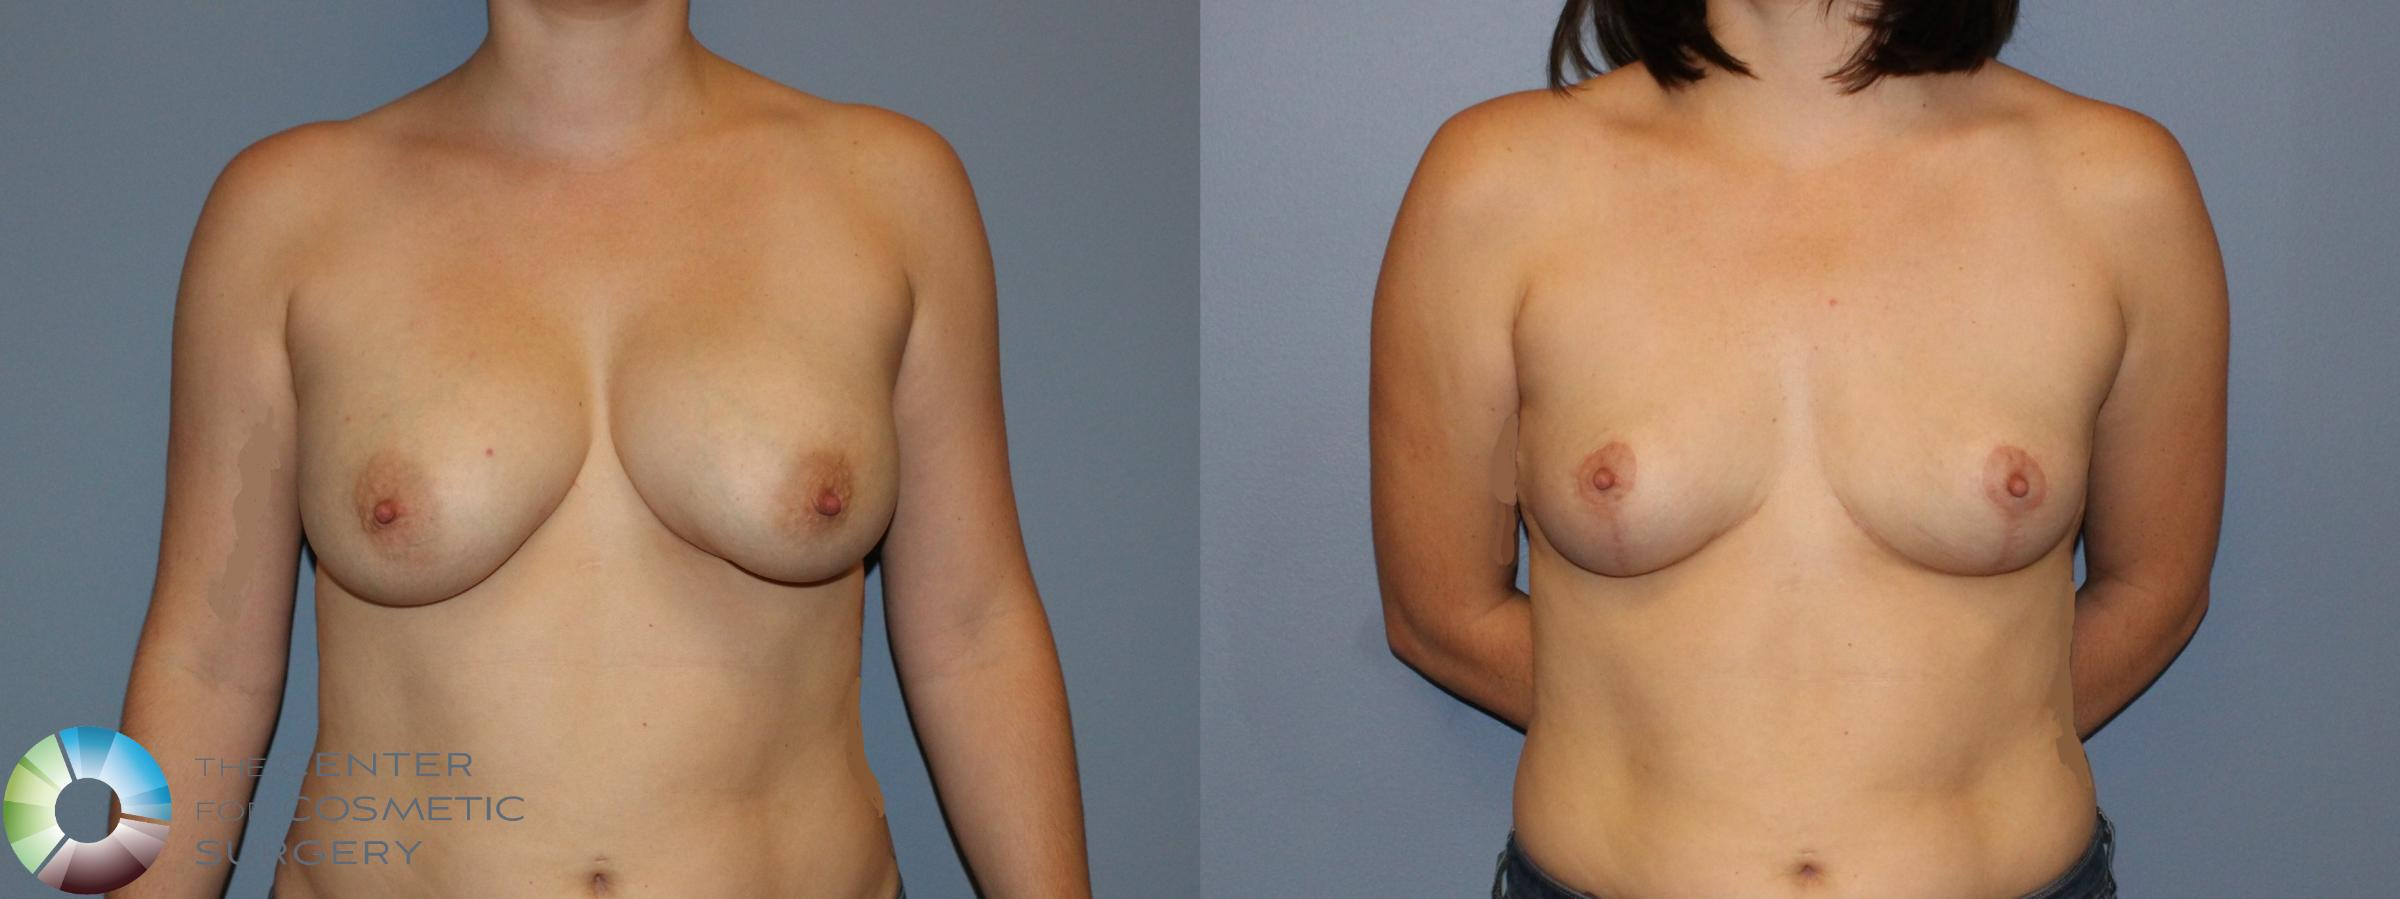 Breast Implant Removal (Explant) Case 11222 Before & After Front | Golden, CO | The Center for Cosmetic Surgery